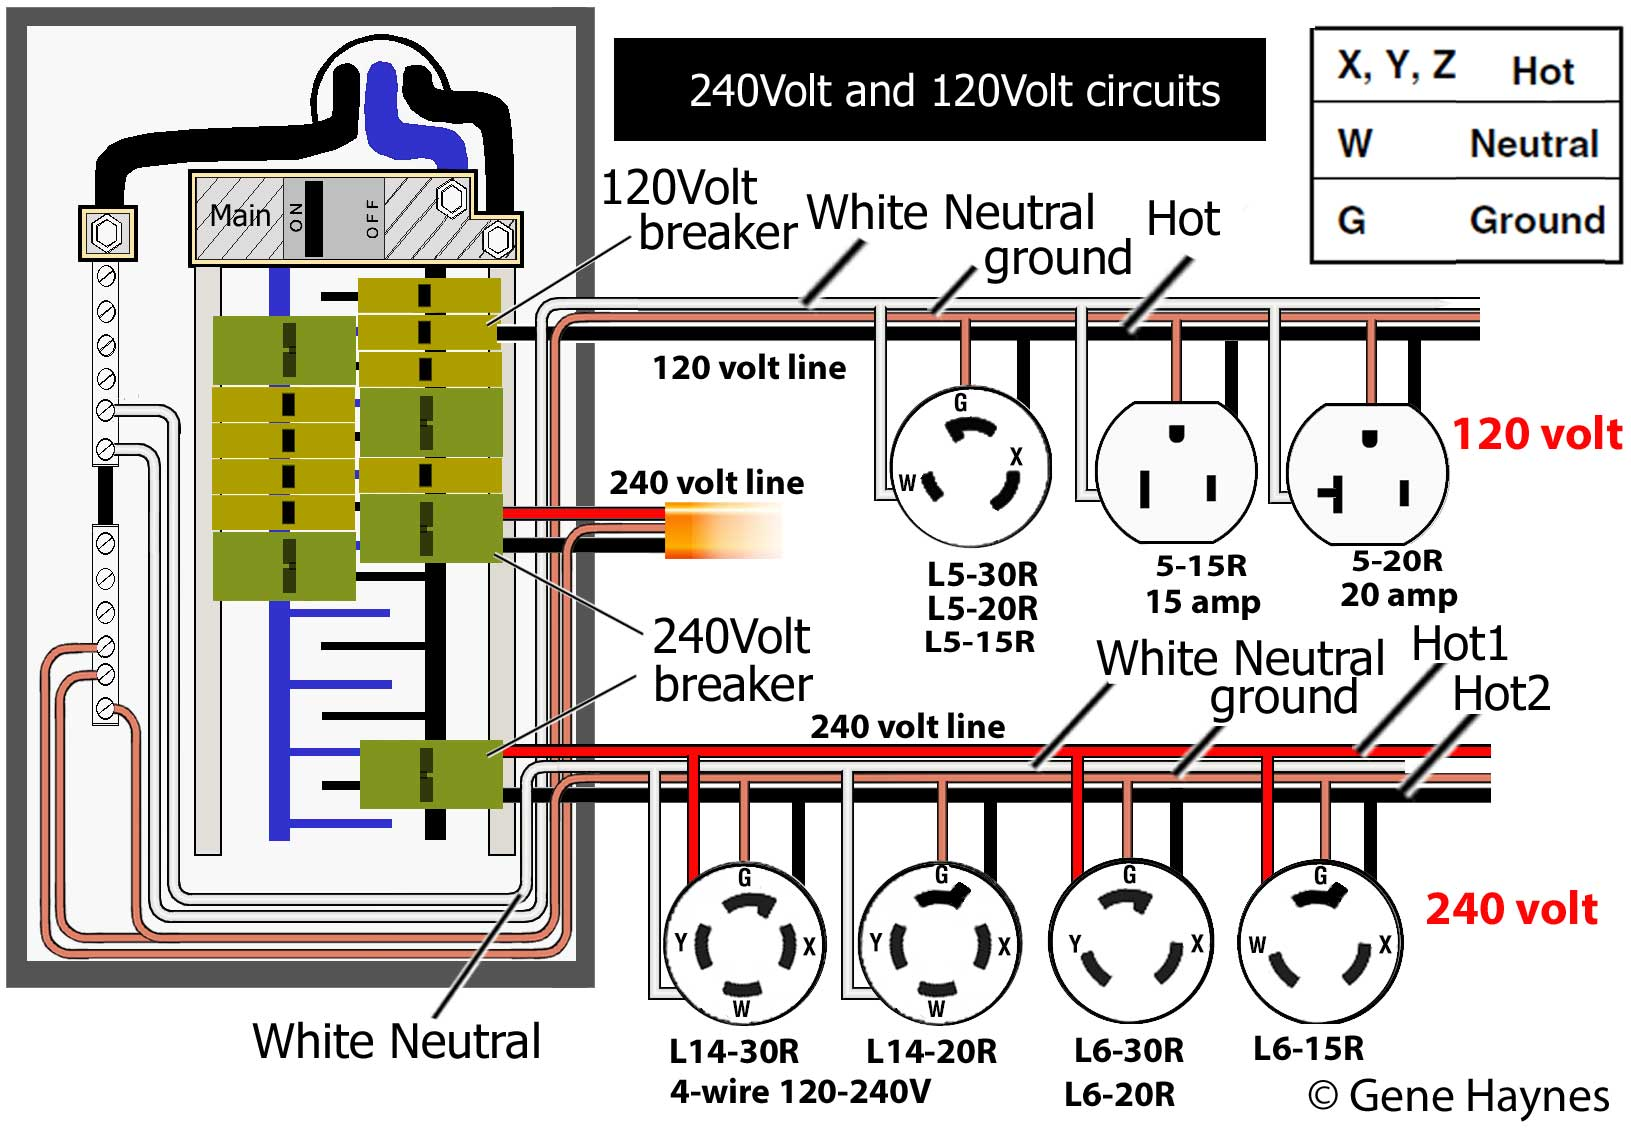 hight resolution of 30a receptacle wiring diagram wiring diagram wiring diagram 220 volt 30 amp outlet mis wiring a 120 volt rv 30 amp